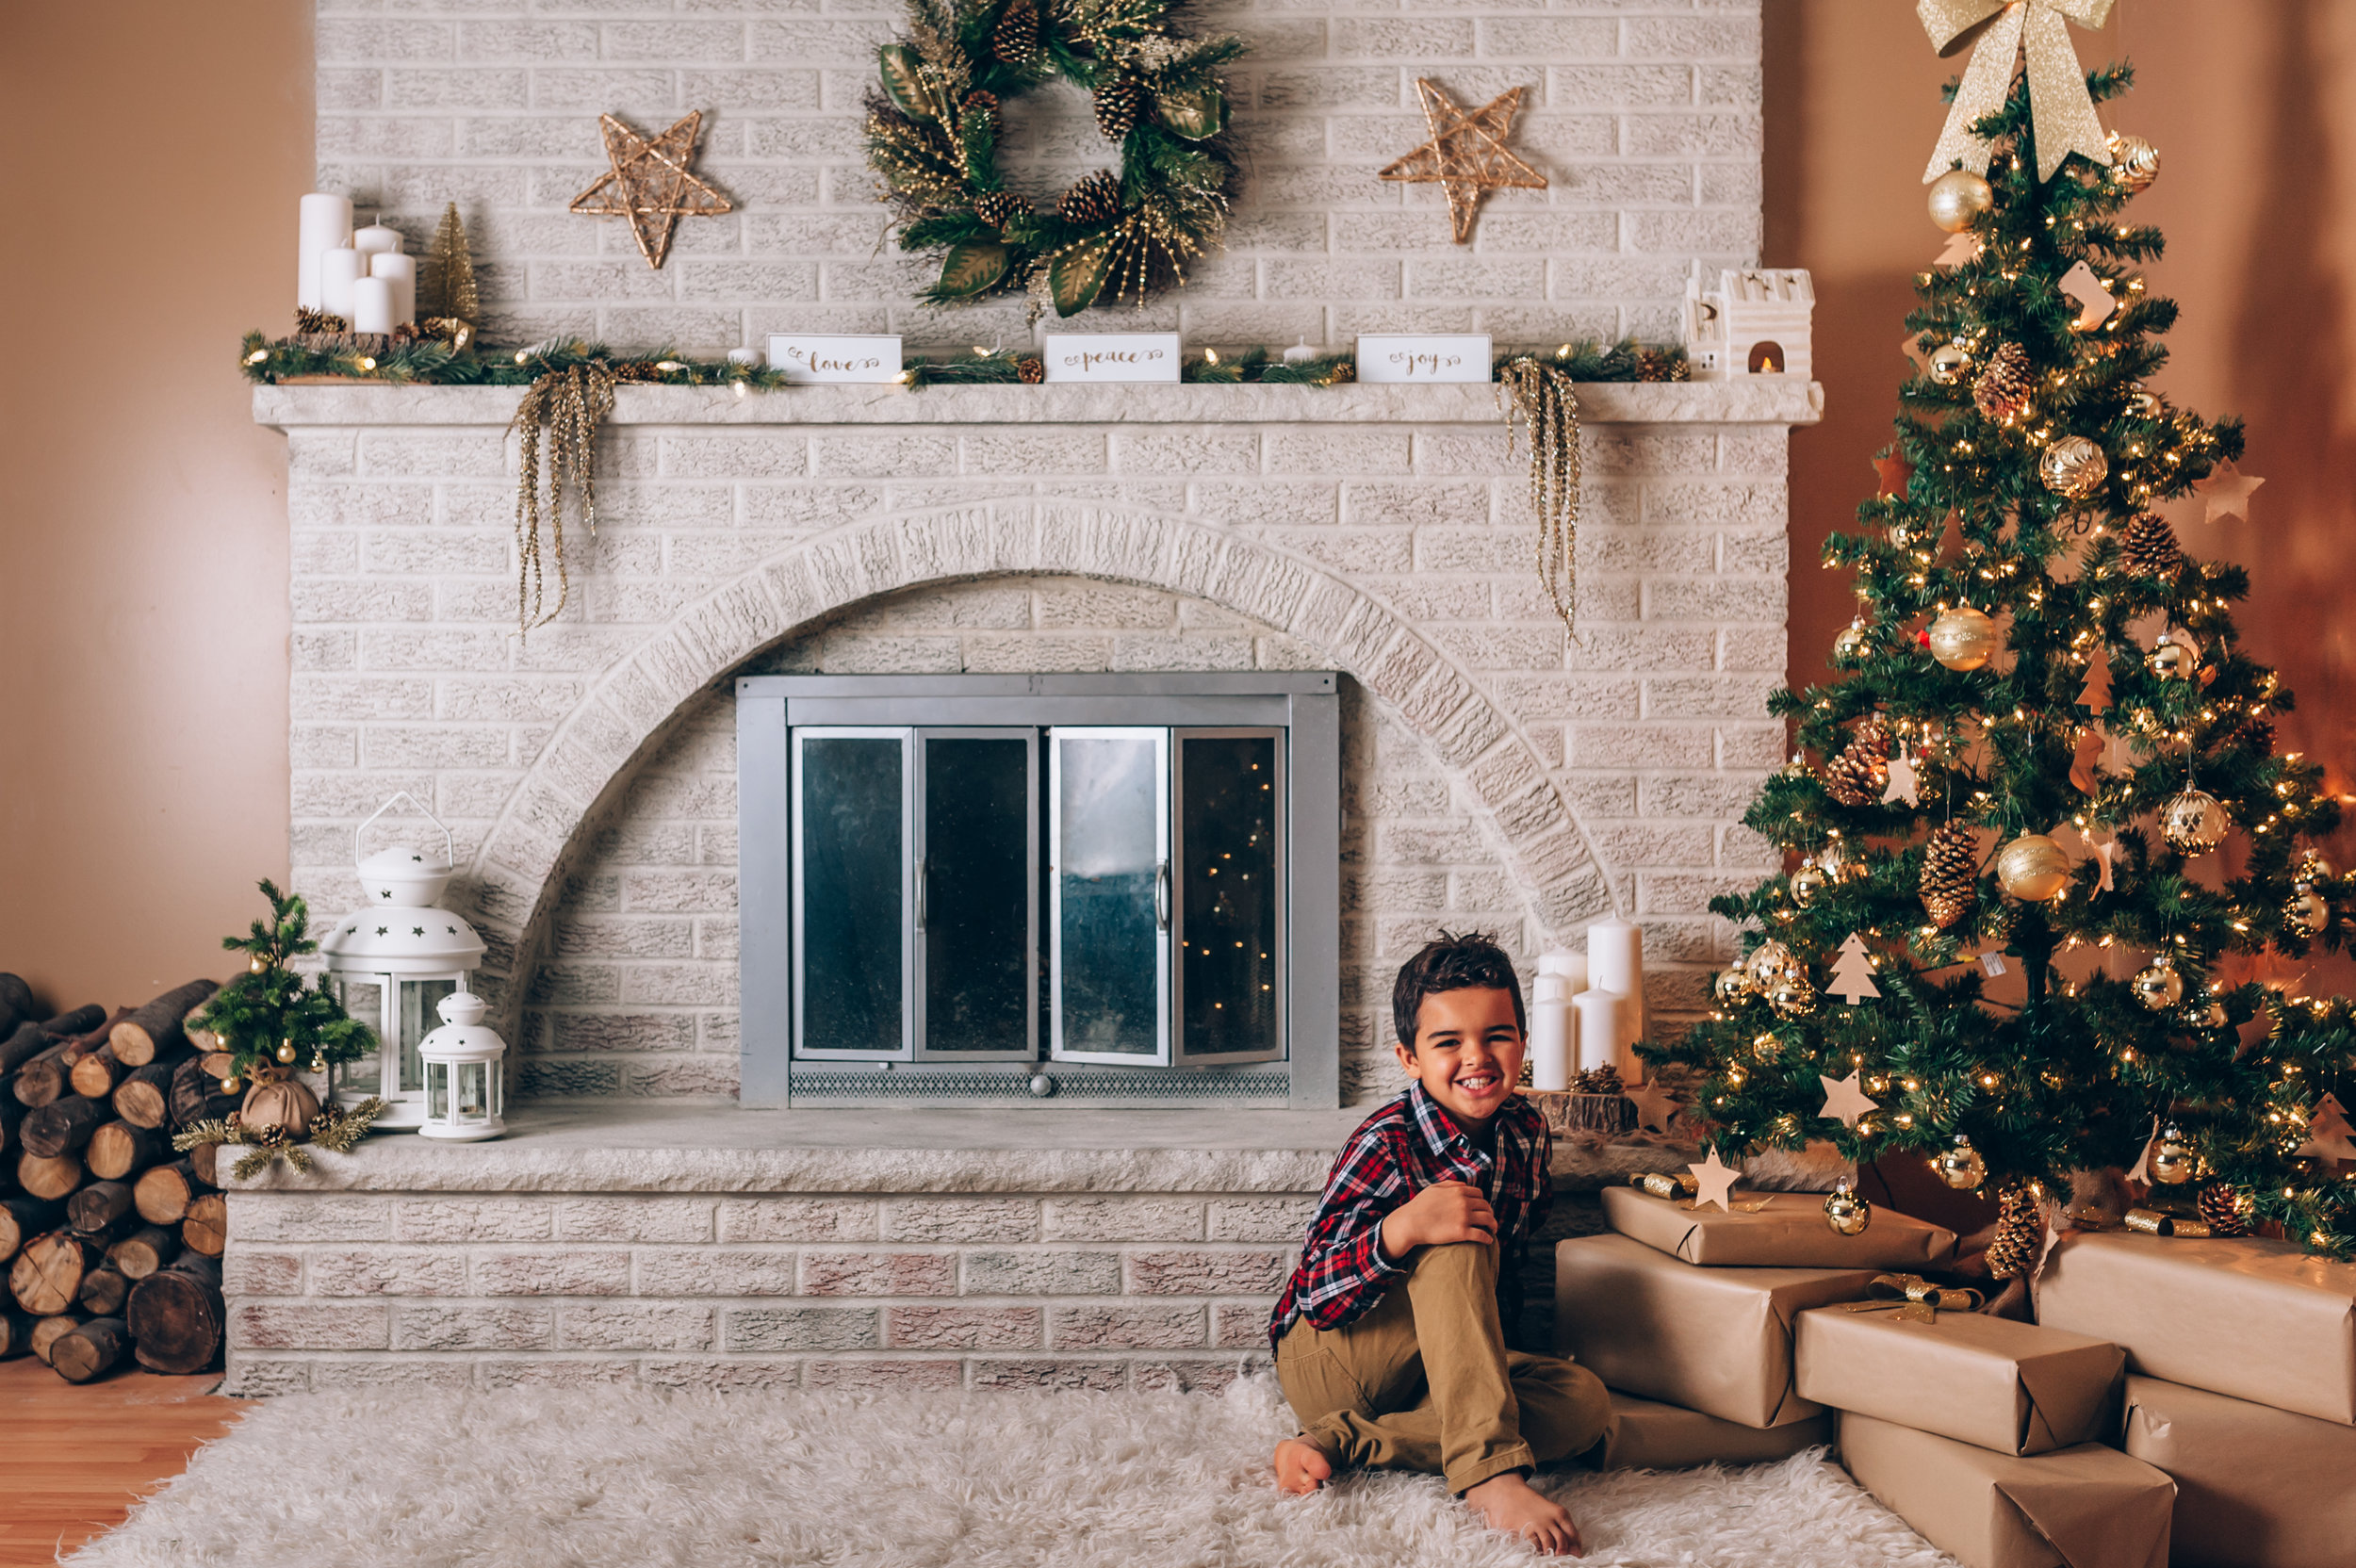 christmas, mini session, Christmas session, christmas set, family, siblings